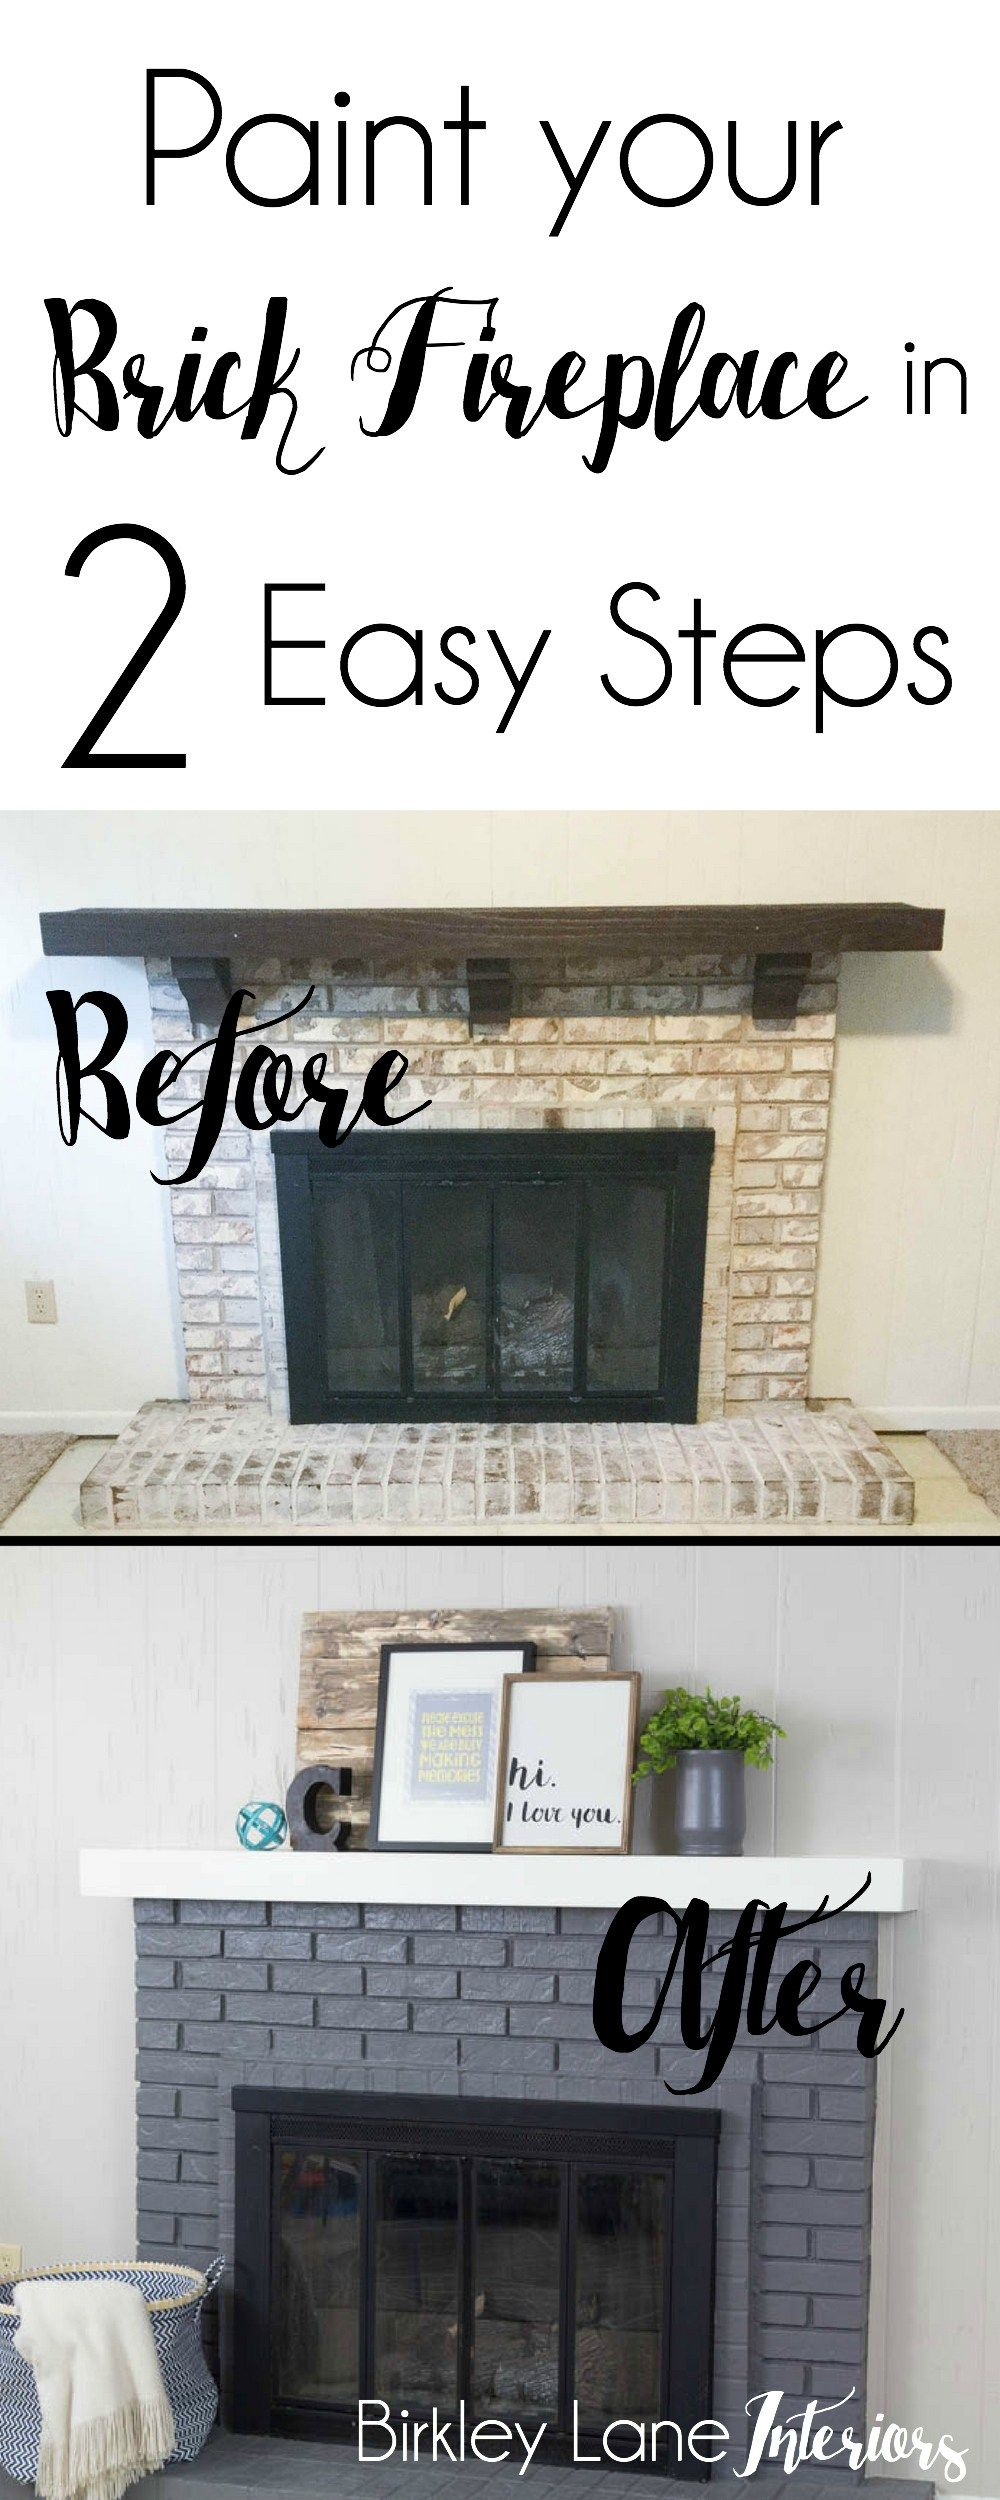 Paint Your Brick Fireplace in Easy Steps Grey fireplace